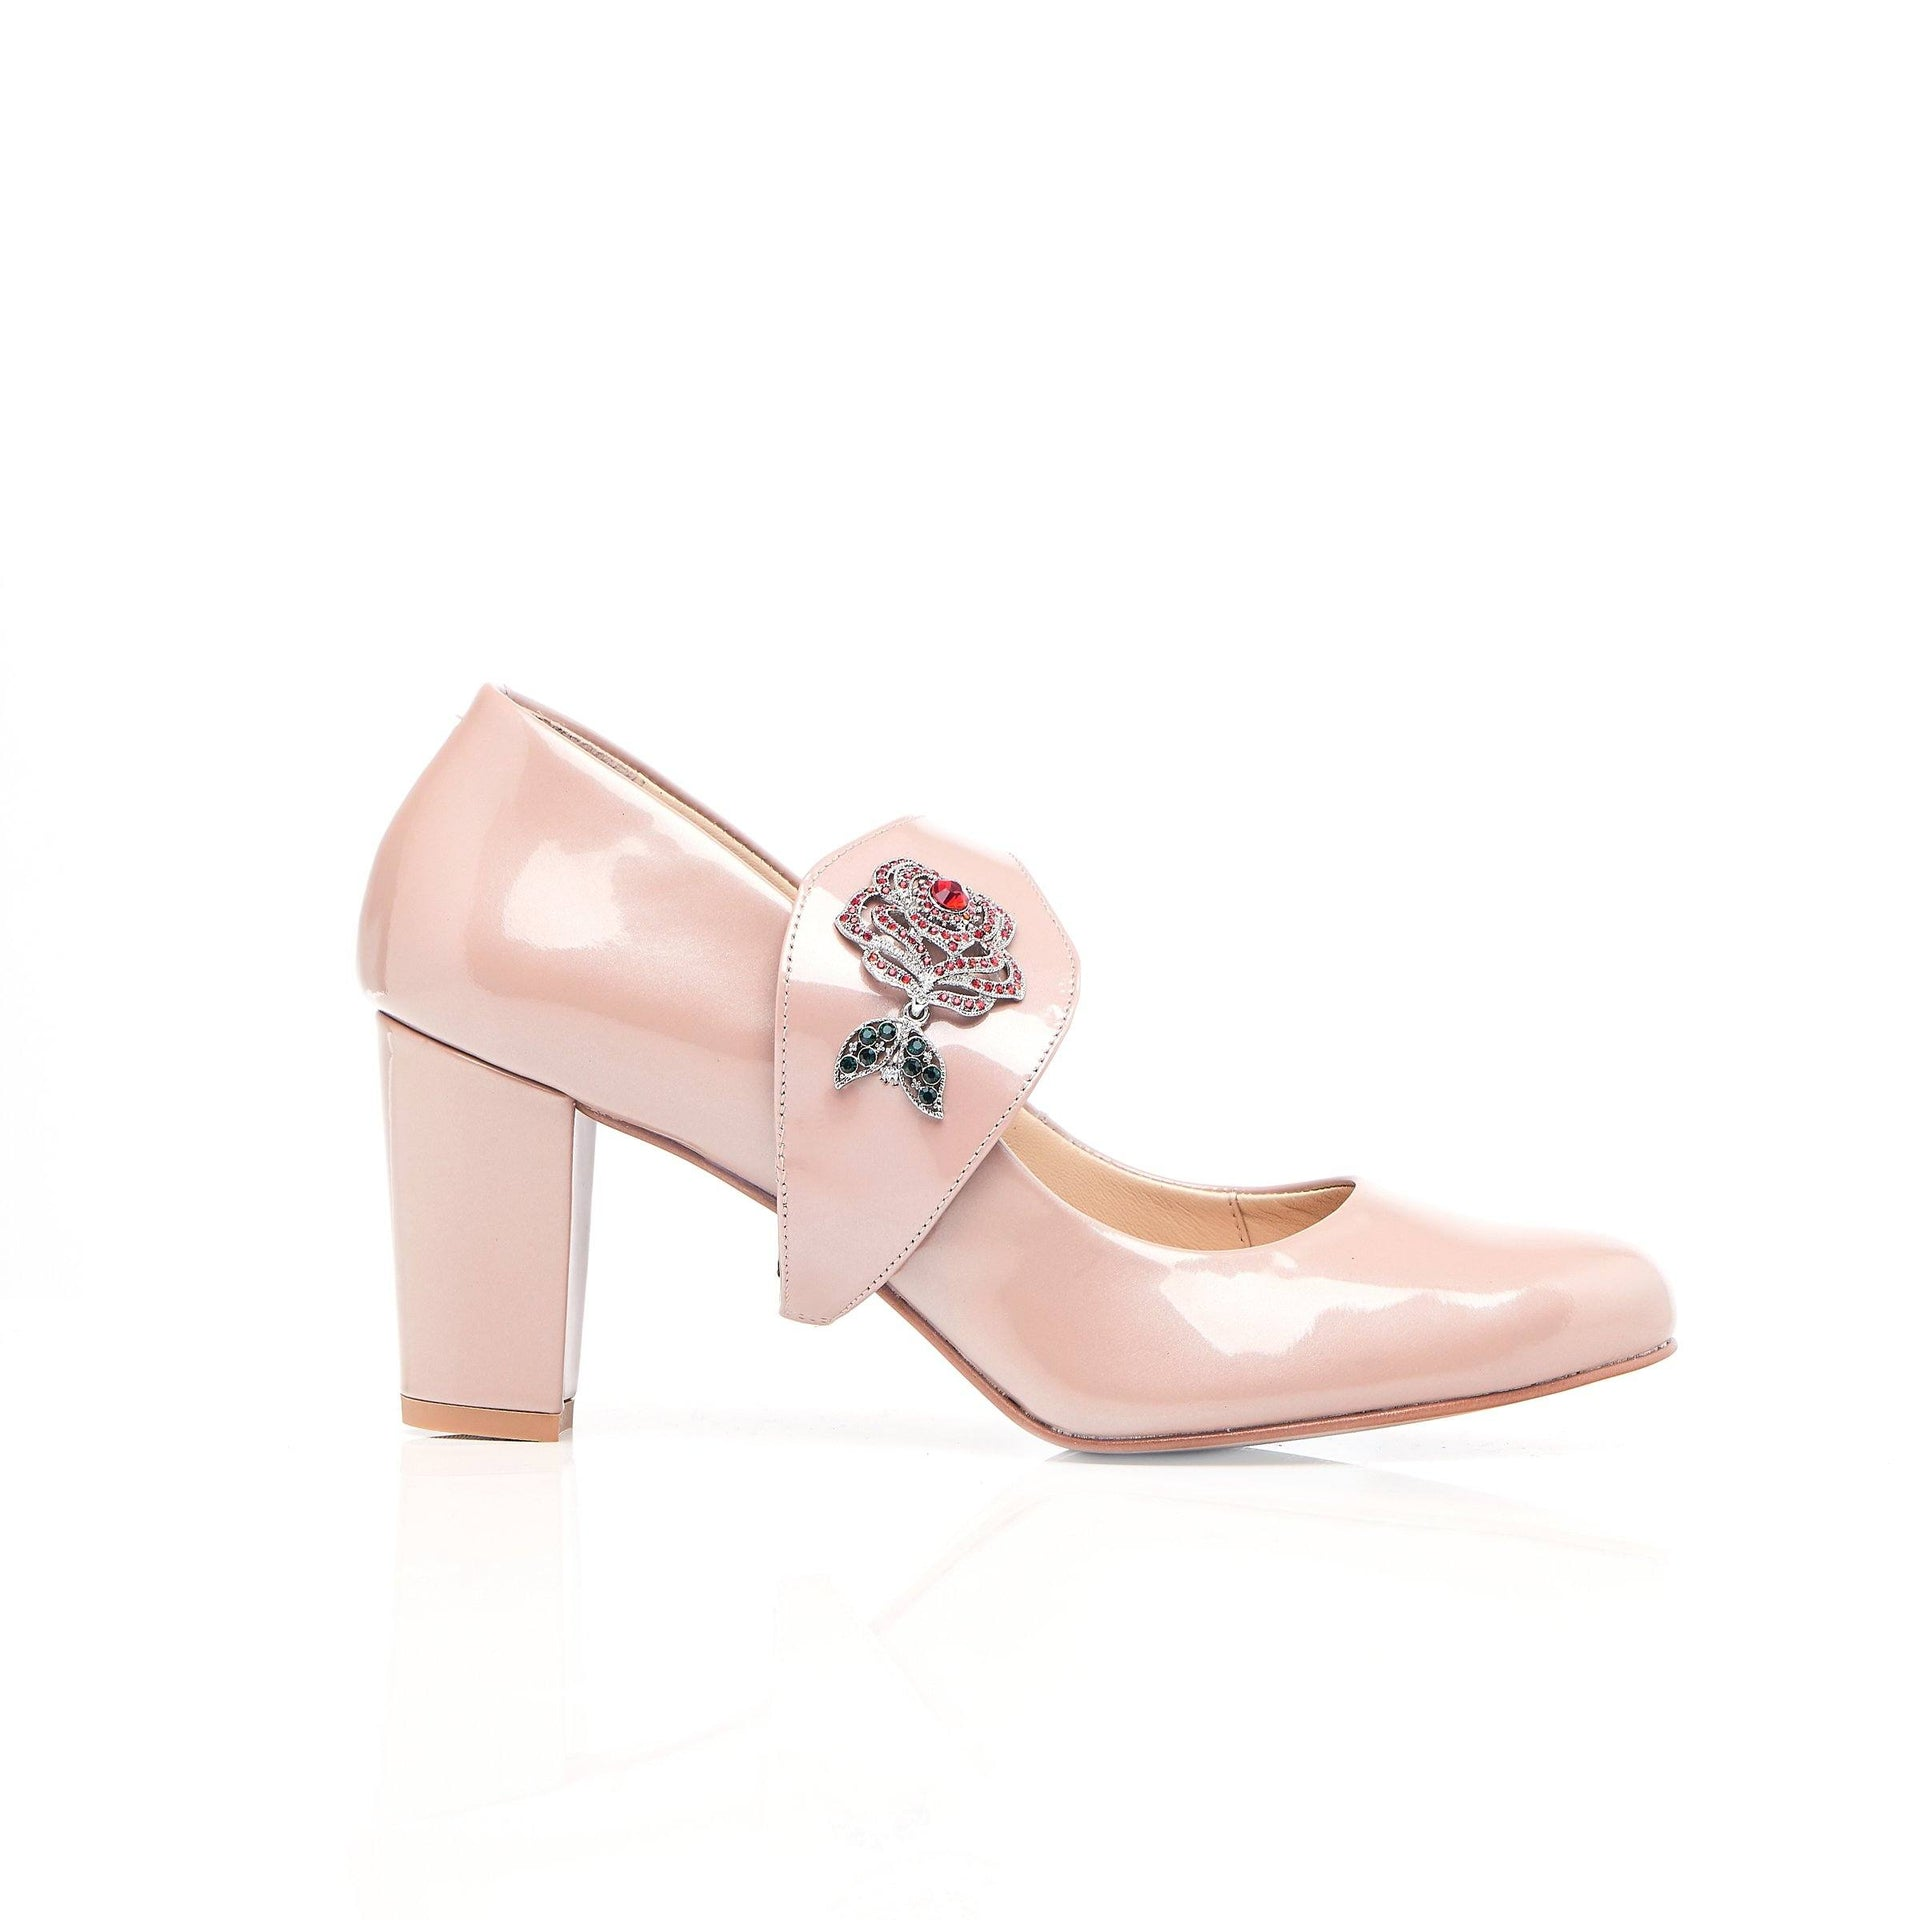 Time To Bloom - Blush Block Heel